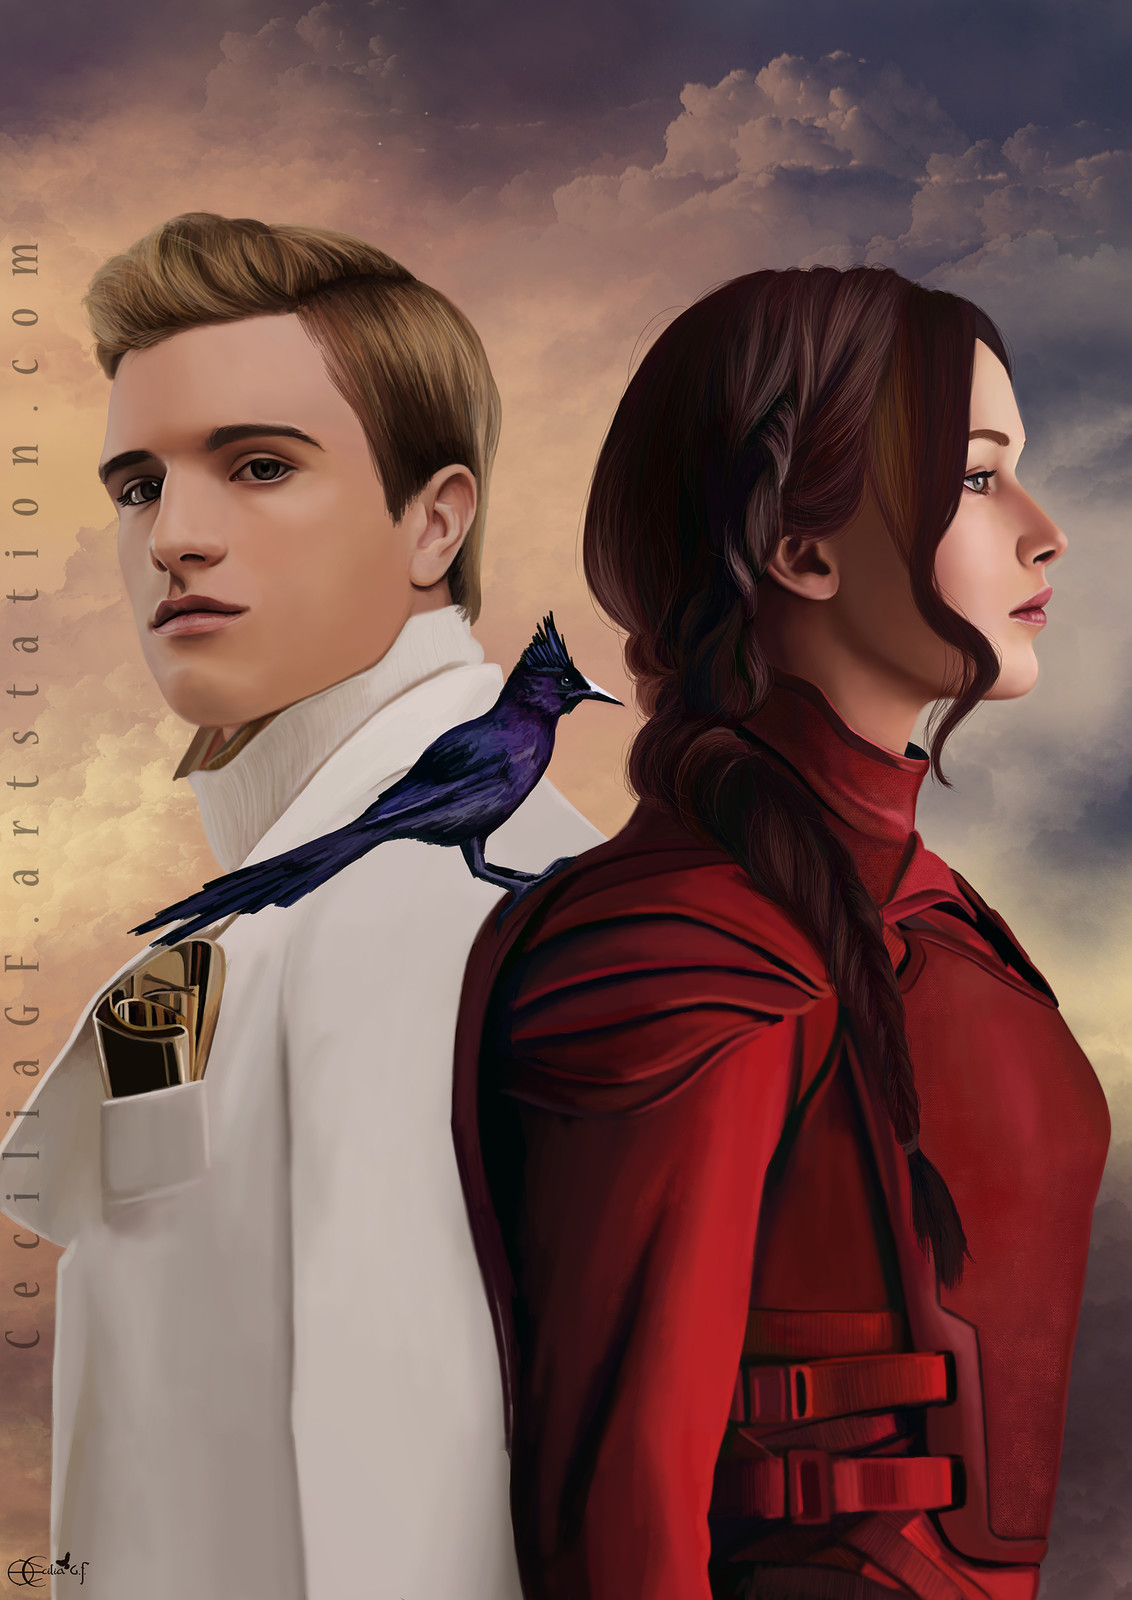 Commission - Peeta and Katniss (Hunger Games)